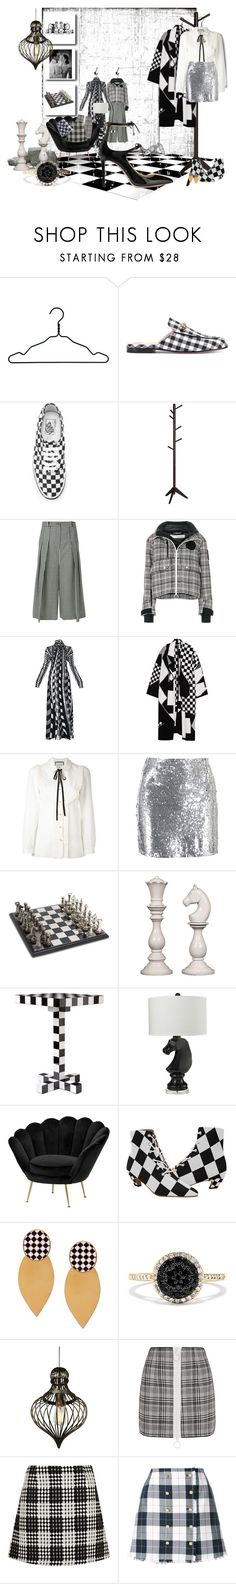 """""""...today's outfit will be..mm.. Black and White. And people wondered where she got her inspiration from."""" by tgtigerlily ❤ liked on Polyvore featuring Nomess, Gucci, Vans, McQ by Alexander McQueen, Off-White, Roberta Di Camerino, STELLA McCARTNEY, Boohoo, Uma and Moooi"""